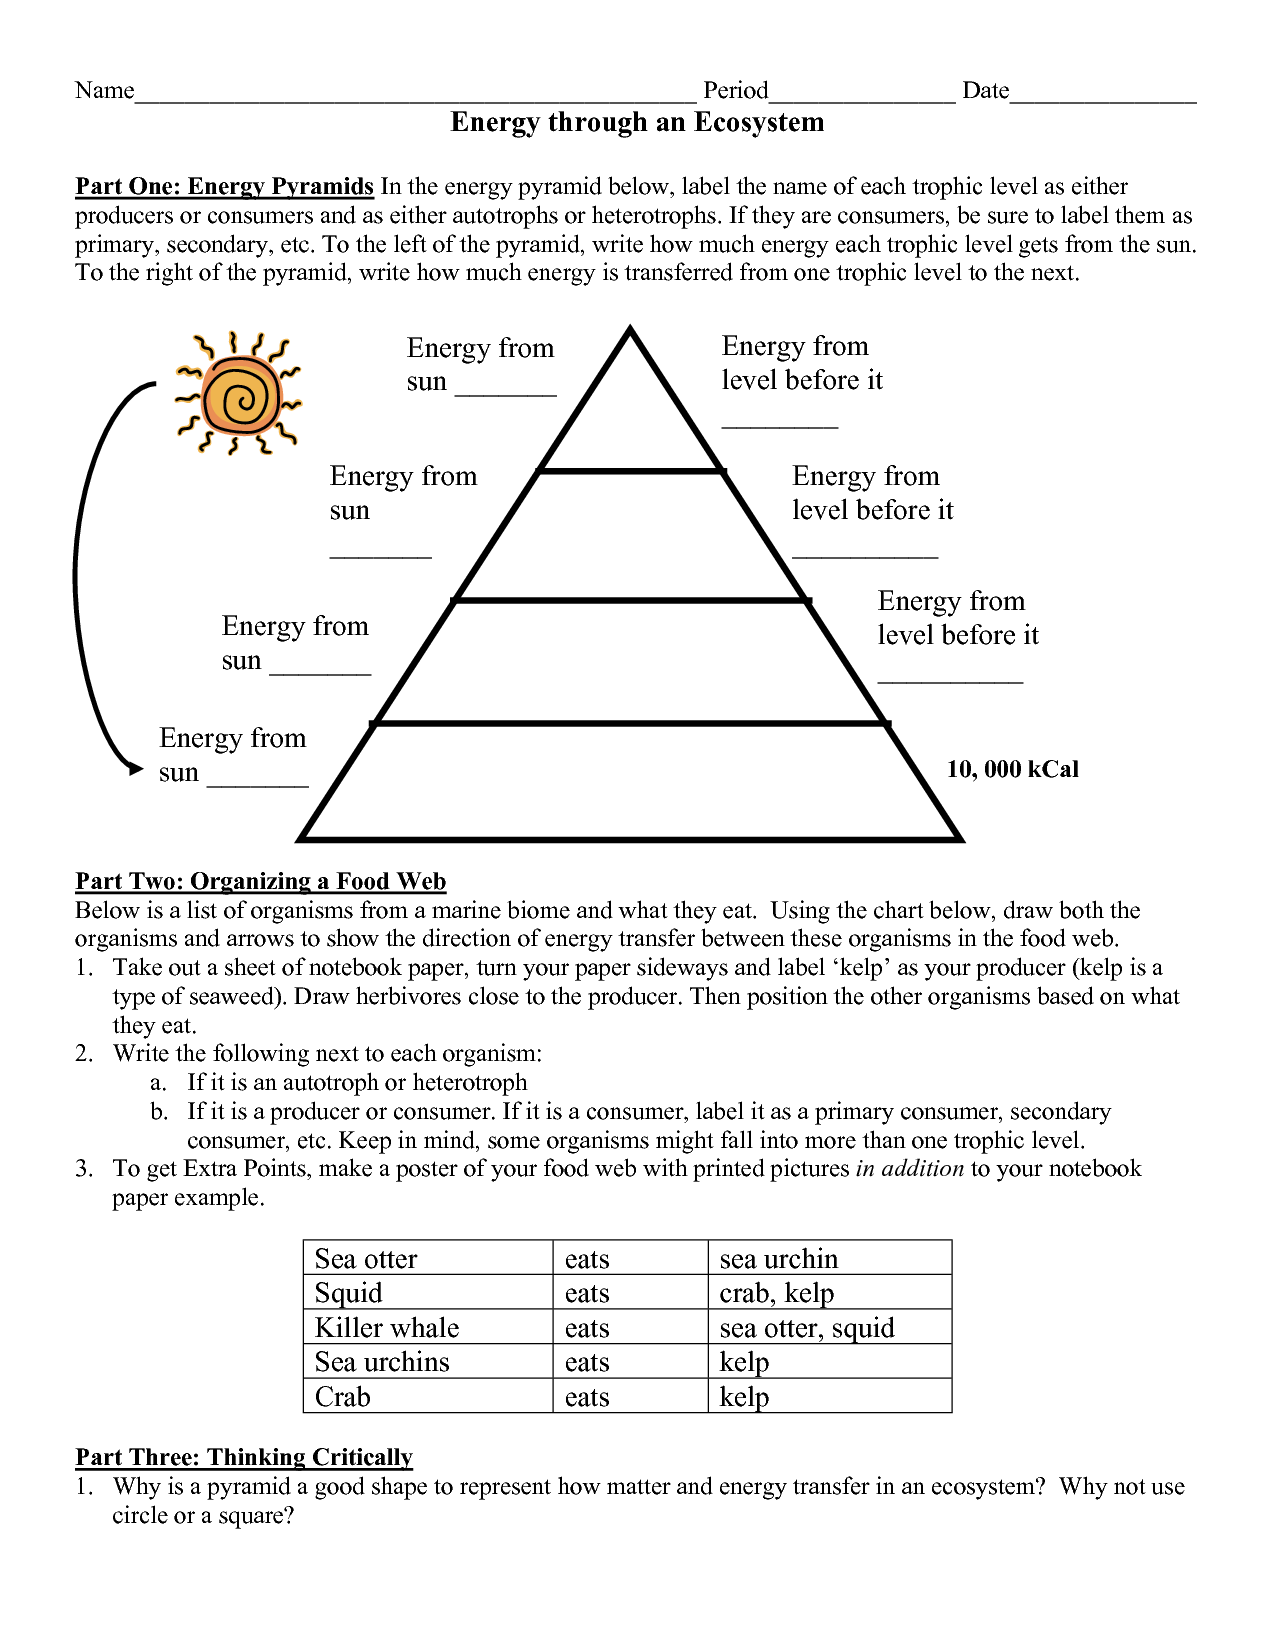 Energy Pyramid Activity - Energy Etfs